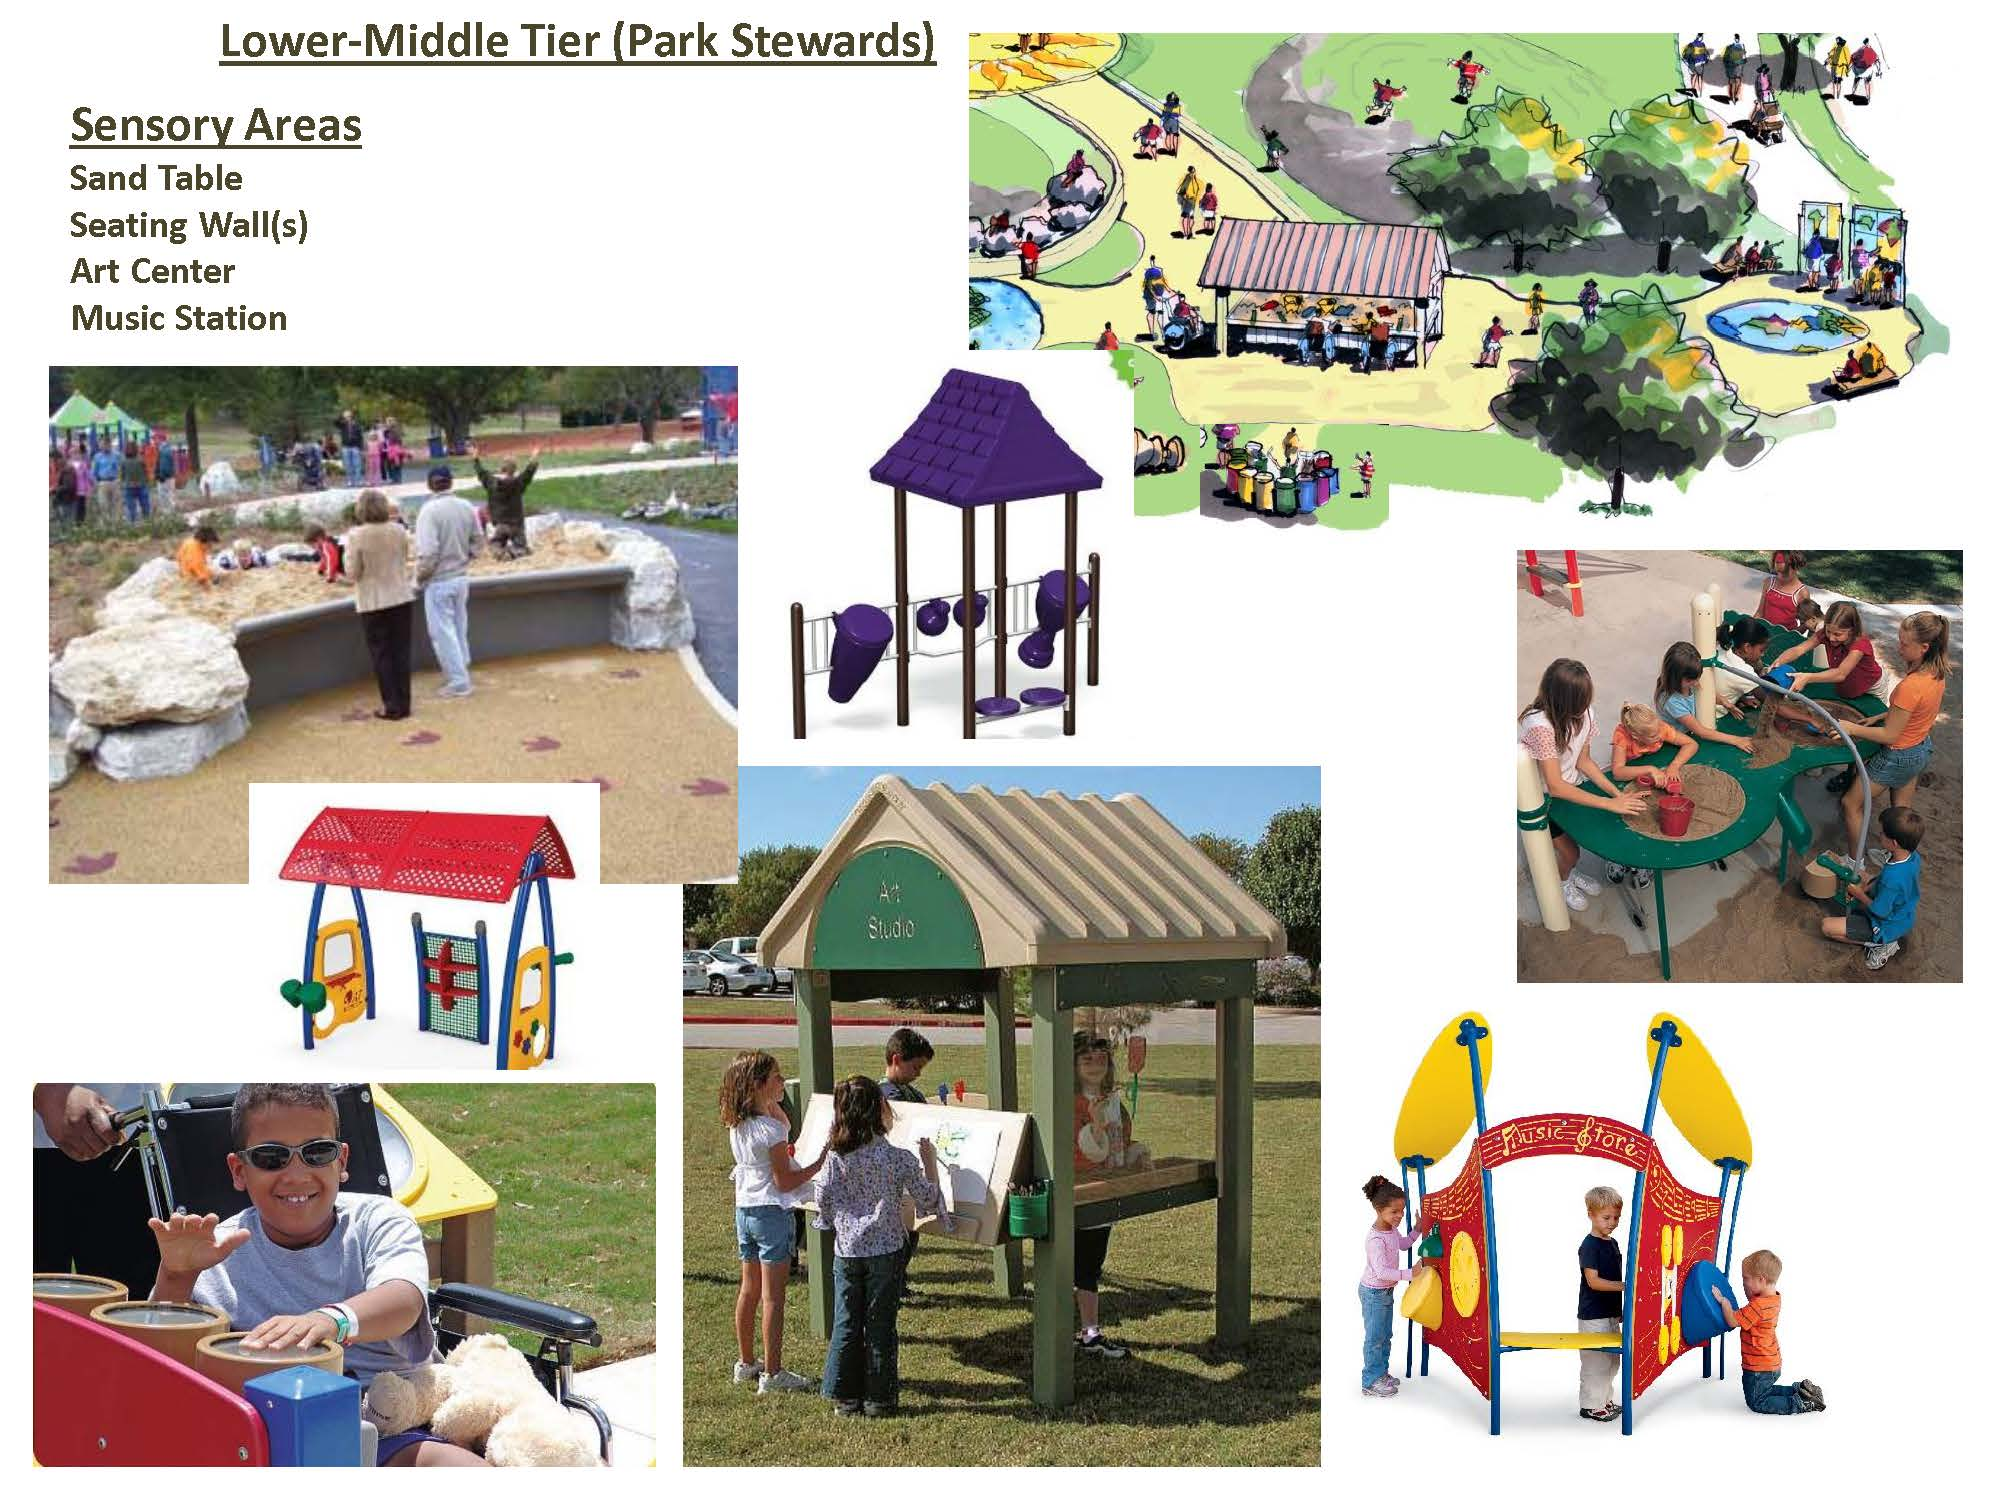 Zachary_PlaygroundPhaseII_Naming Opportunities_Page_08.jpg